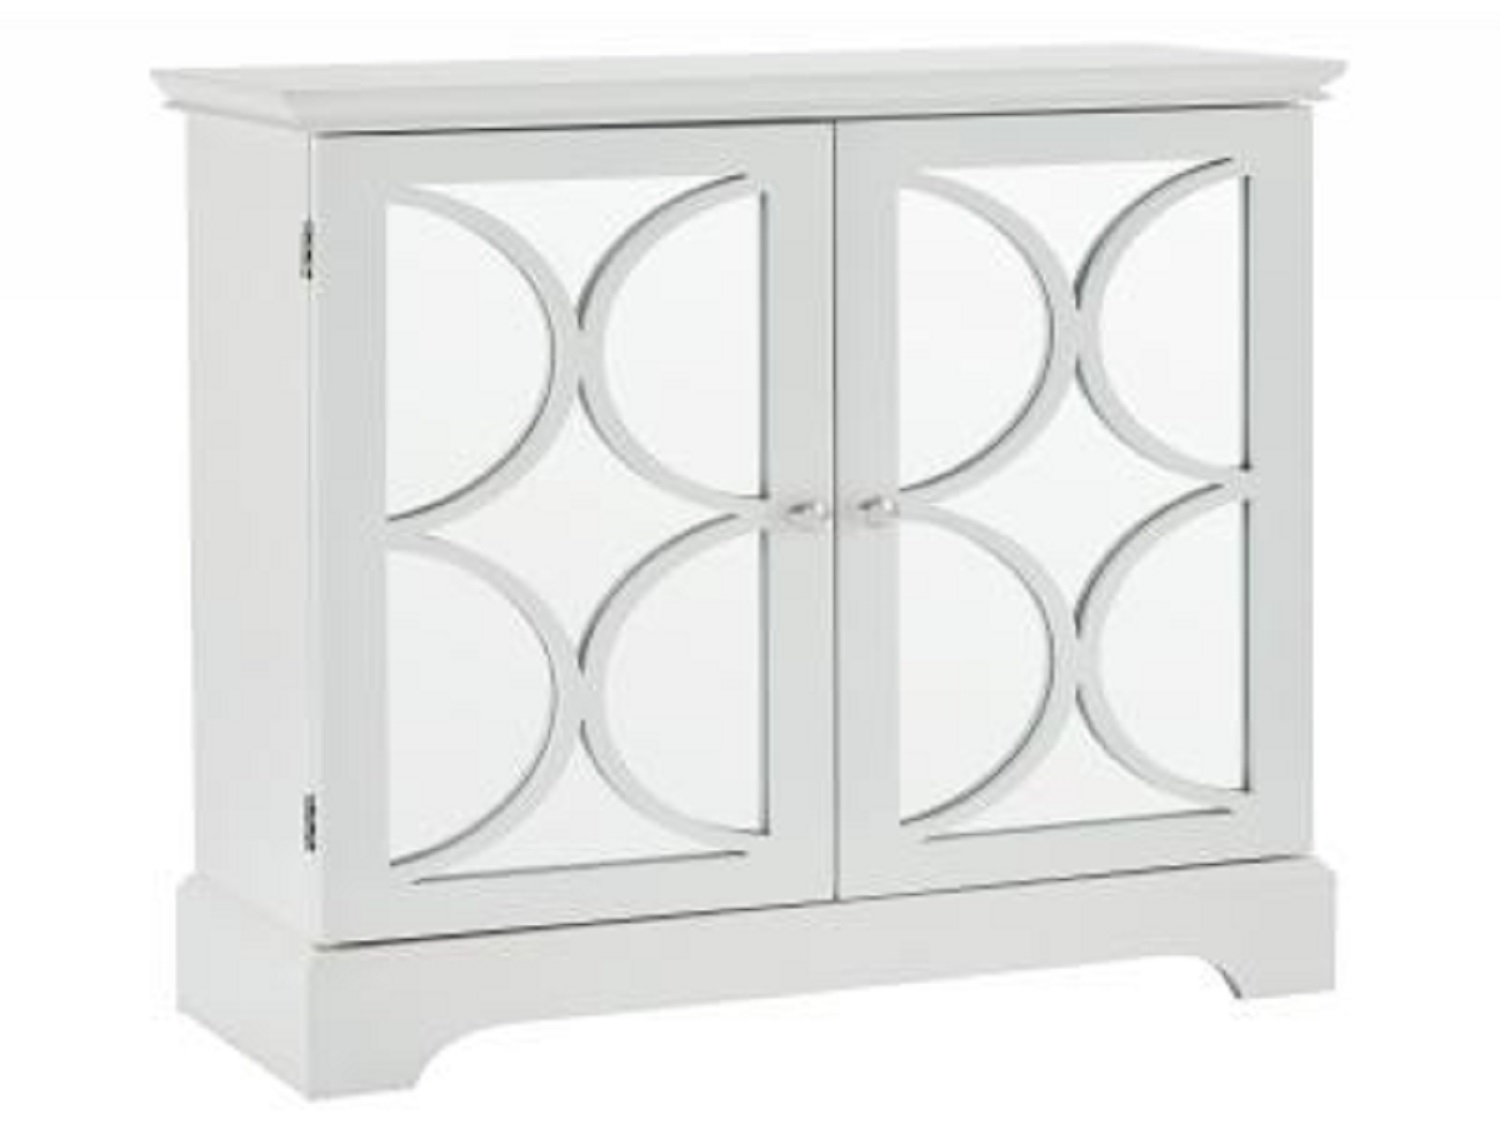 VIOLA-CONSOLE/CABINET-WHITE, 841173032197, Console Table by Midha Furniture to Brampton, Mississauga, Etobicoke, Toronto, Scraborough, Caledon, Oakville, Markham, Ajax, Pickering, Oshawa, Richmondhill, Kitchener, Hamilton and GTA area